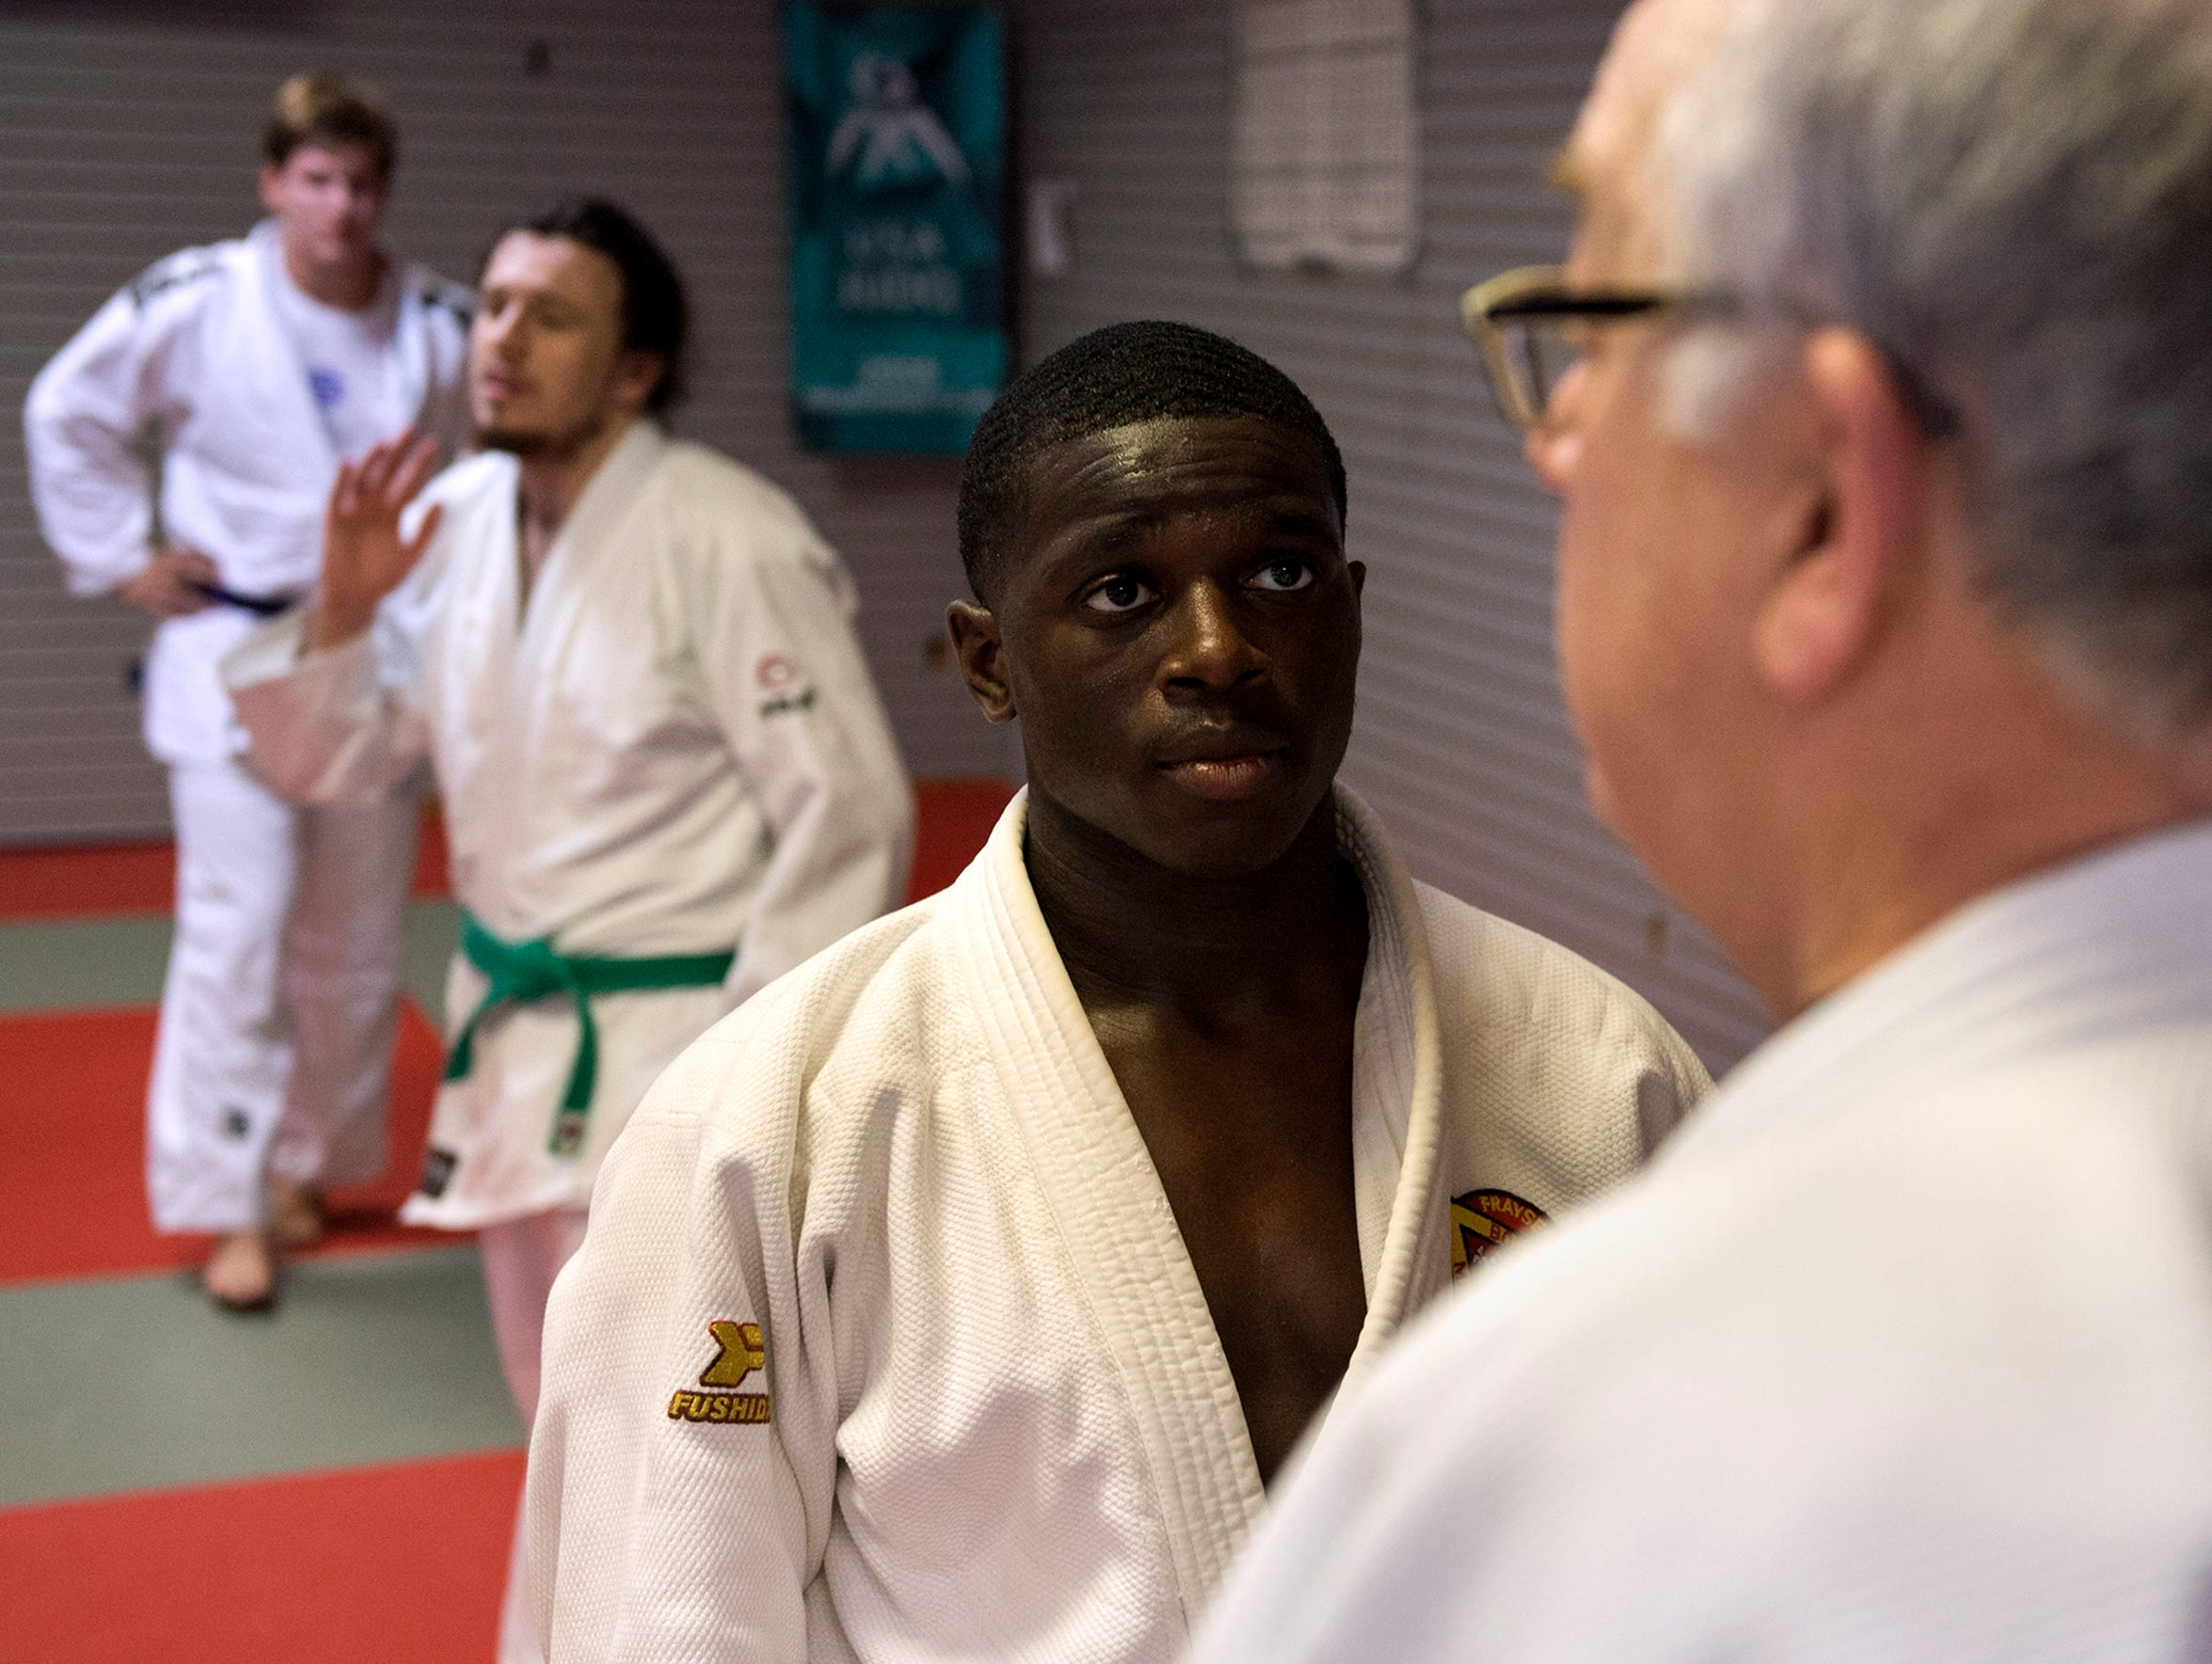 Judo coach Glen Campbell (right) teaches Darrius Isom